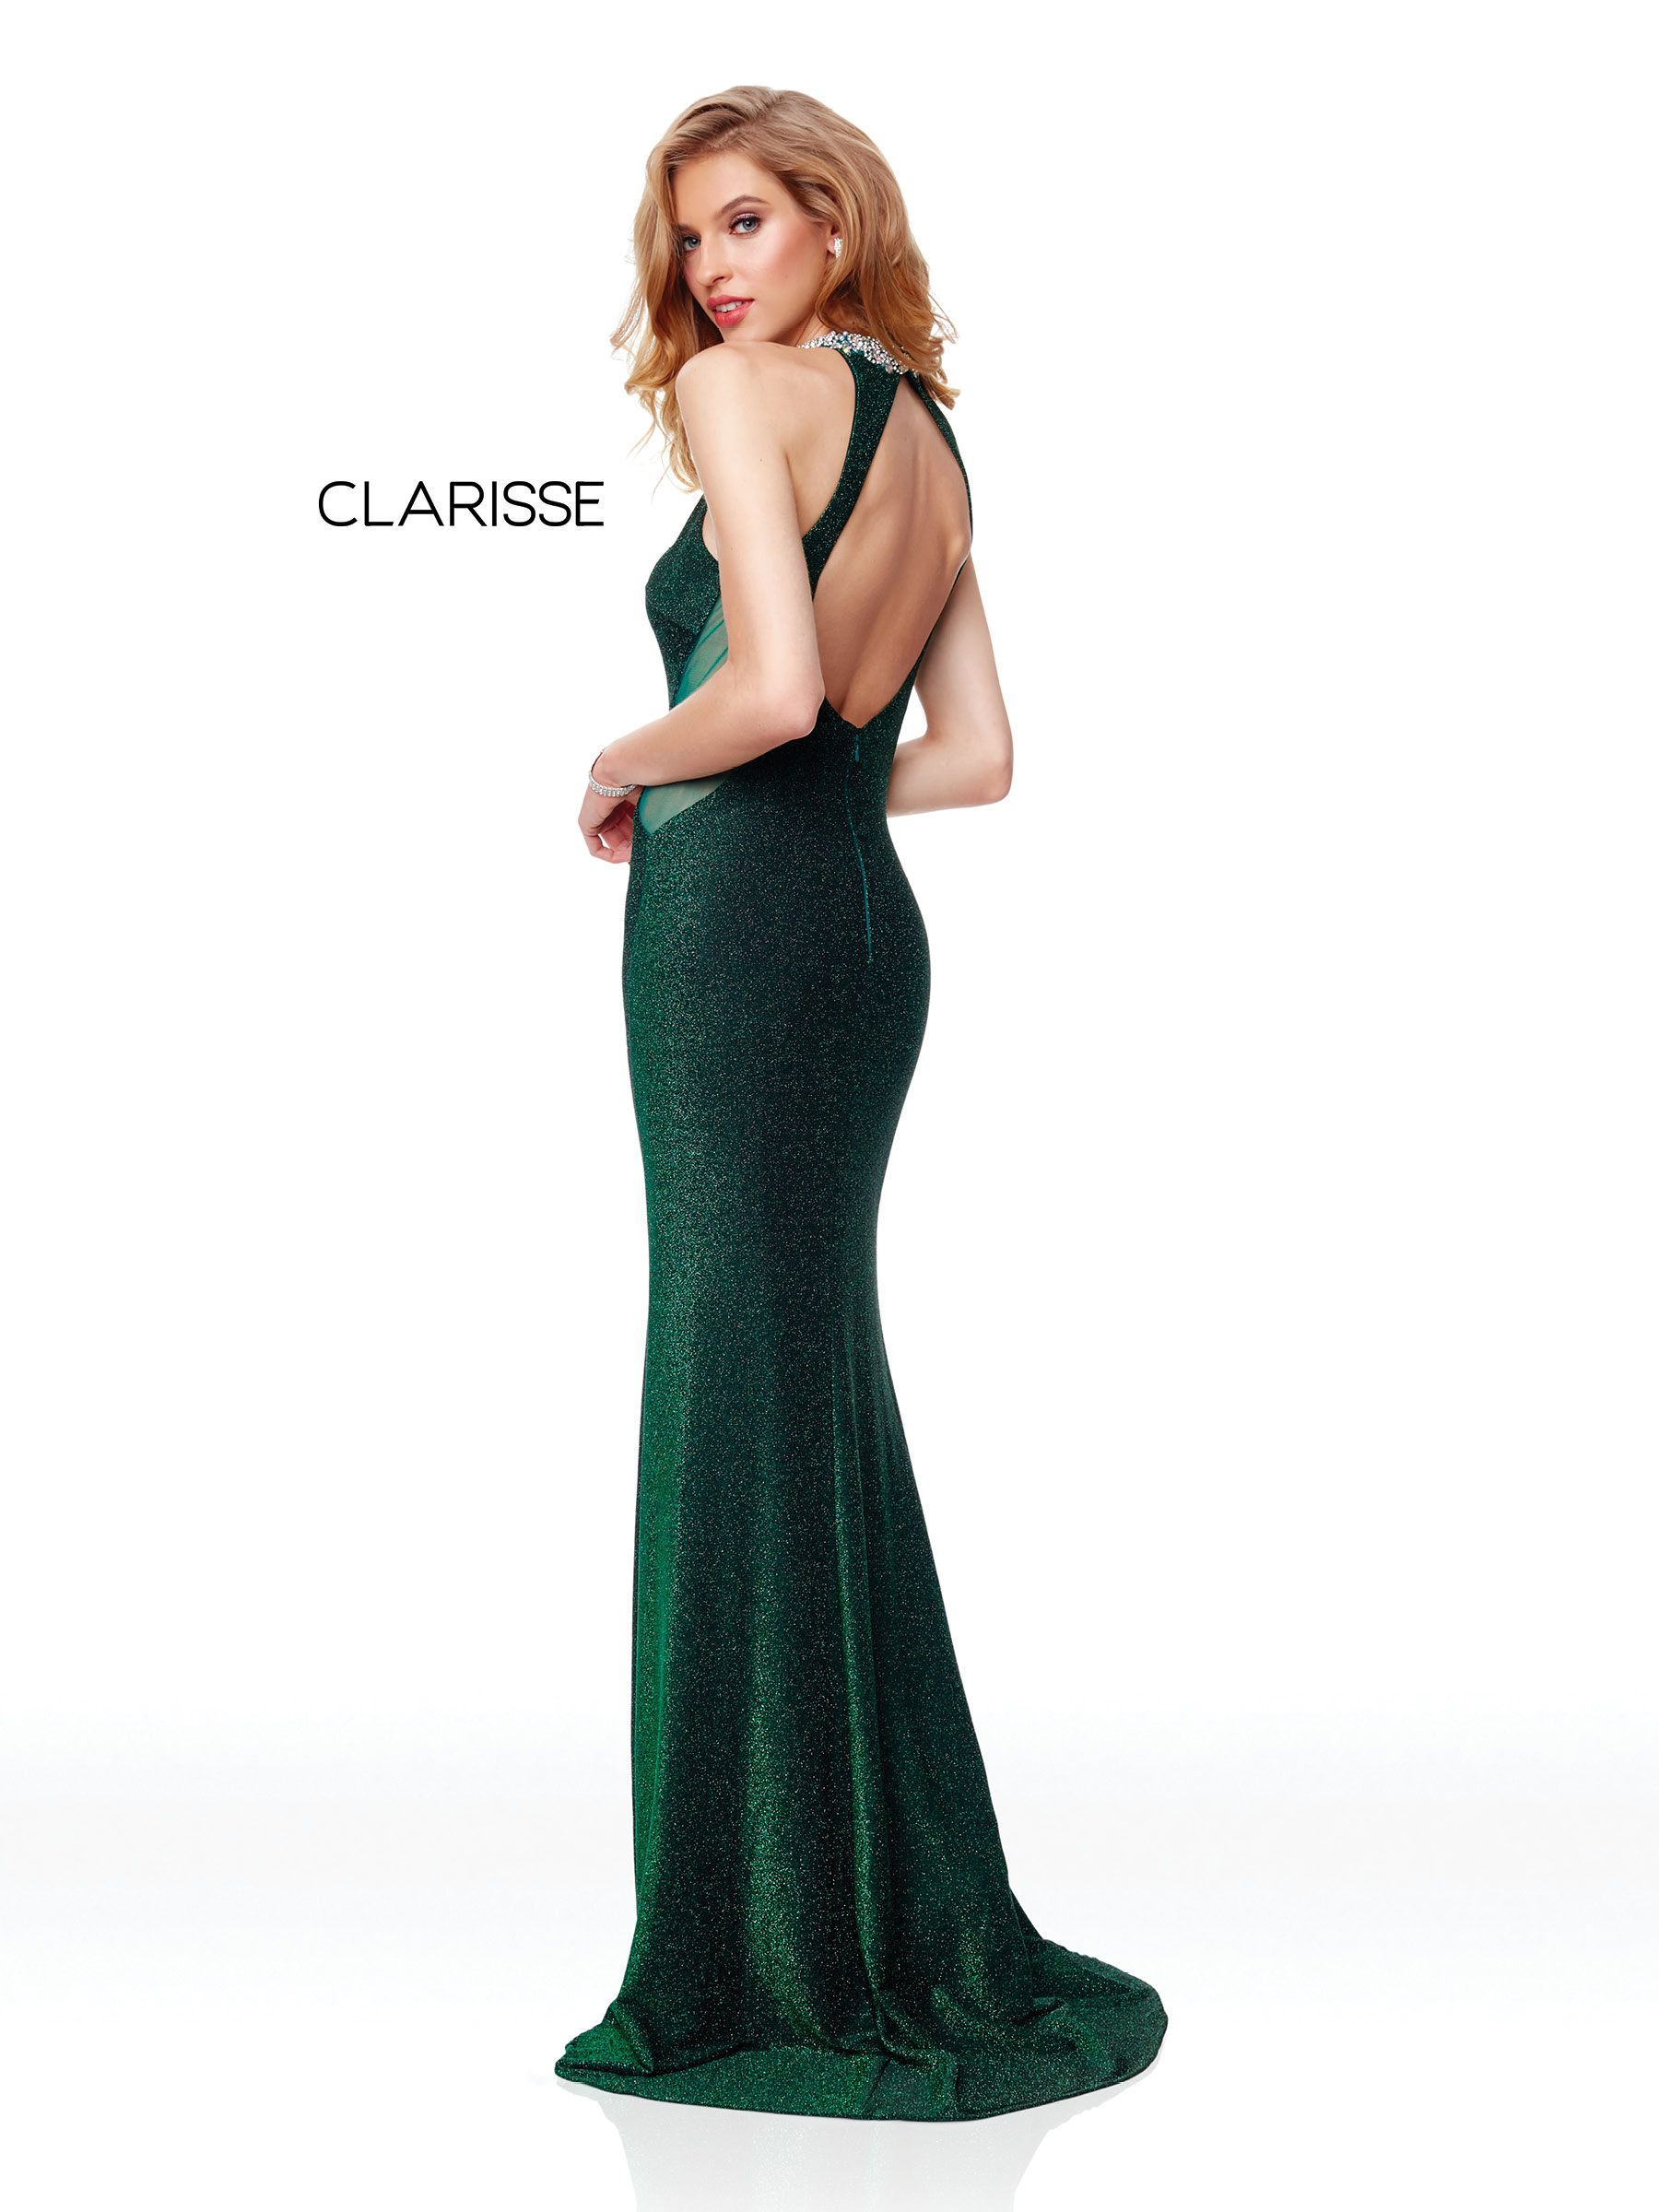 e5532966174 3745 - Emerald green shimmer jersey prom dress with a beaded detail halter  neck and an open back